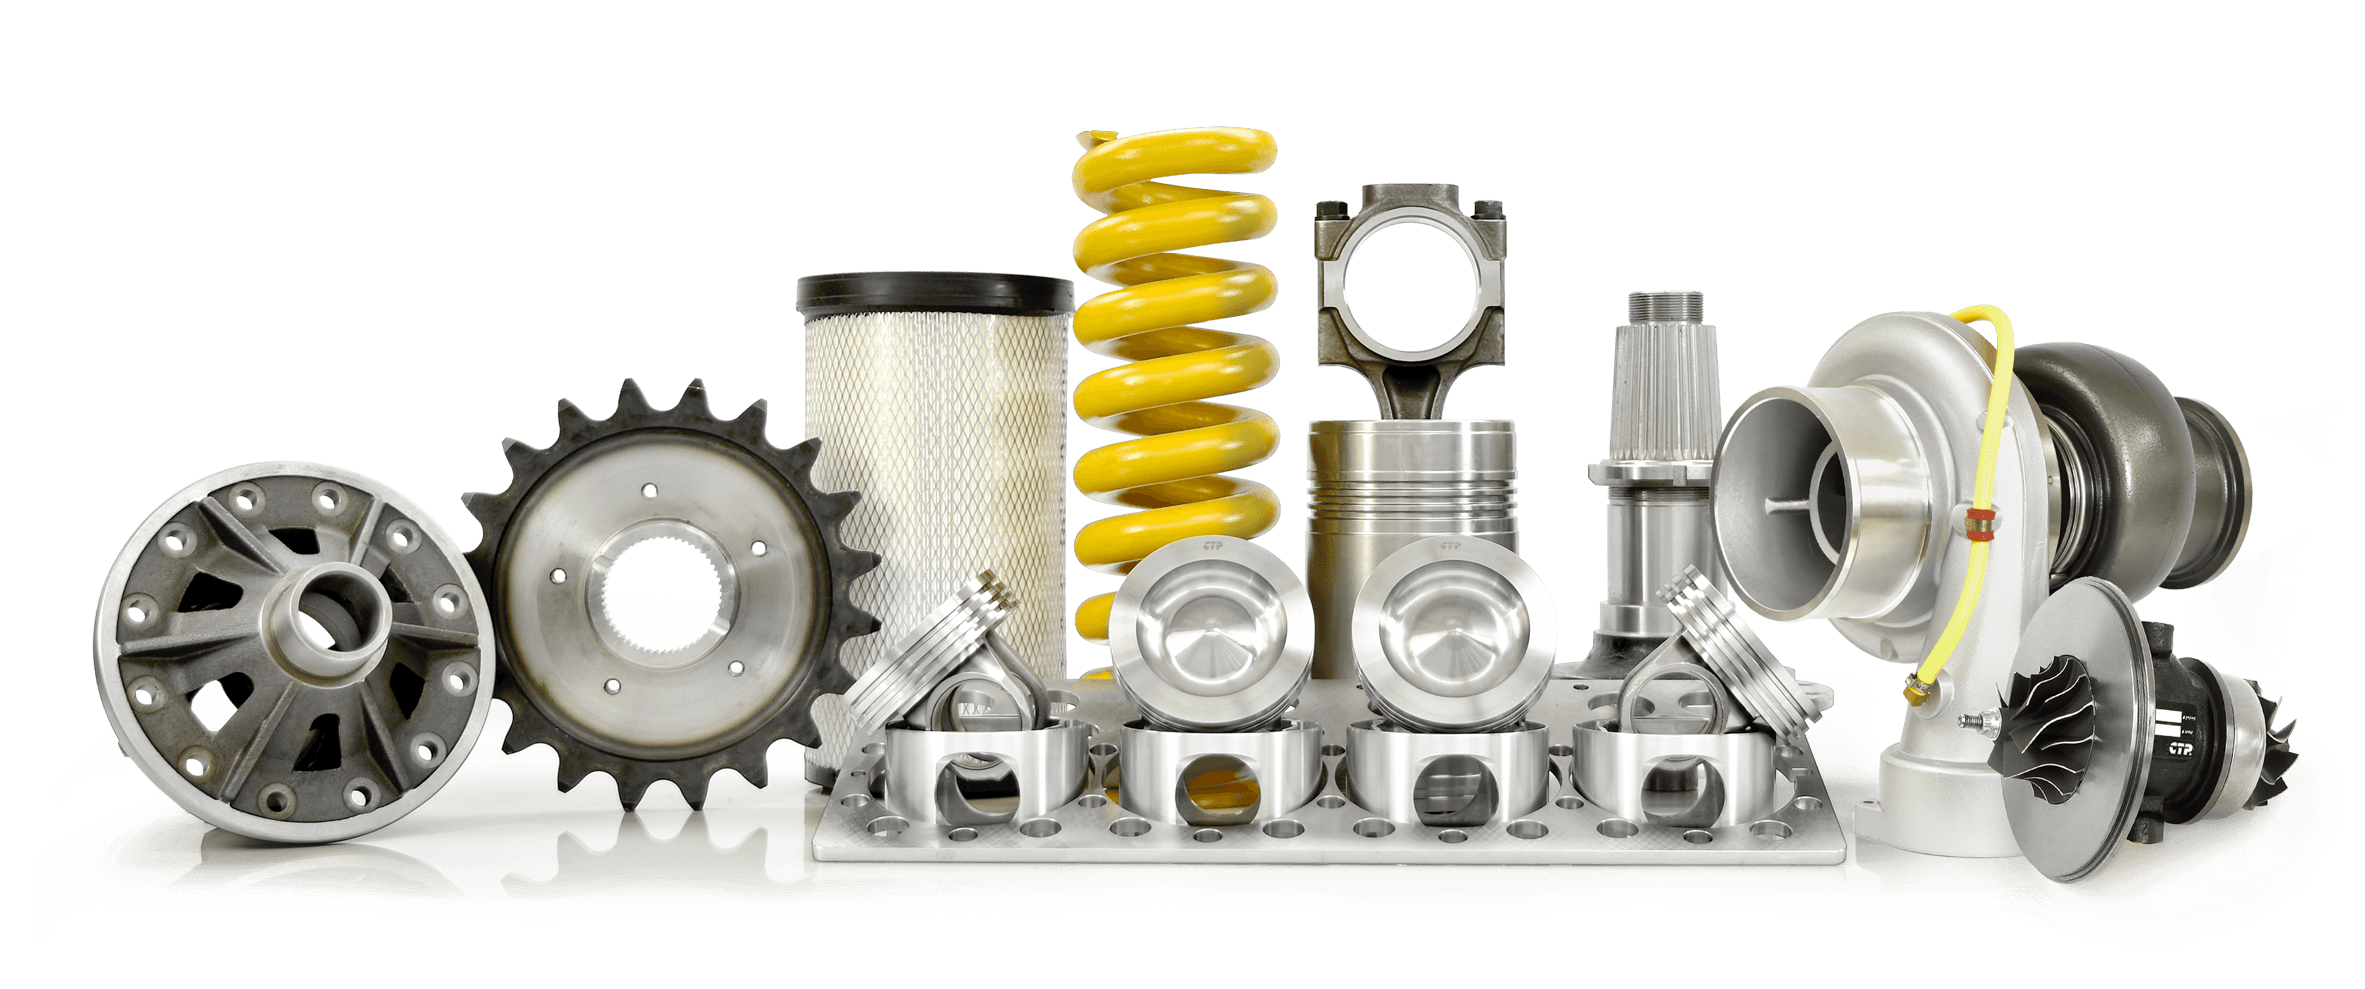 Implement Replacement Parts : Costex tractor parts aftermarket caterpillar replacement